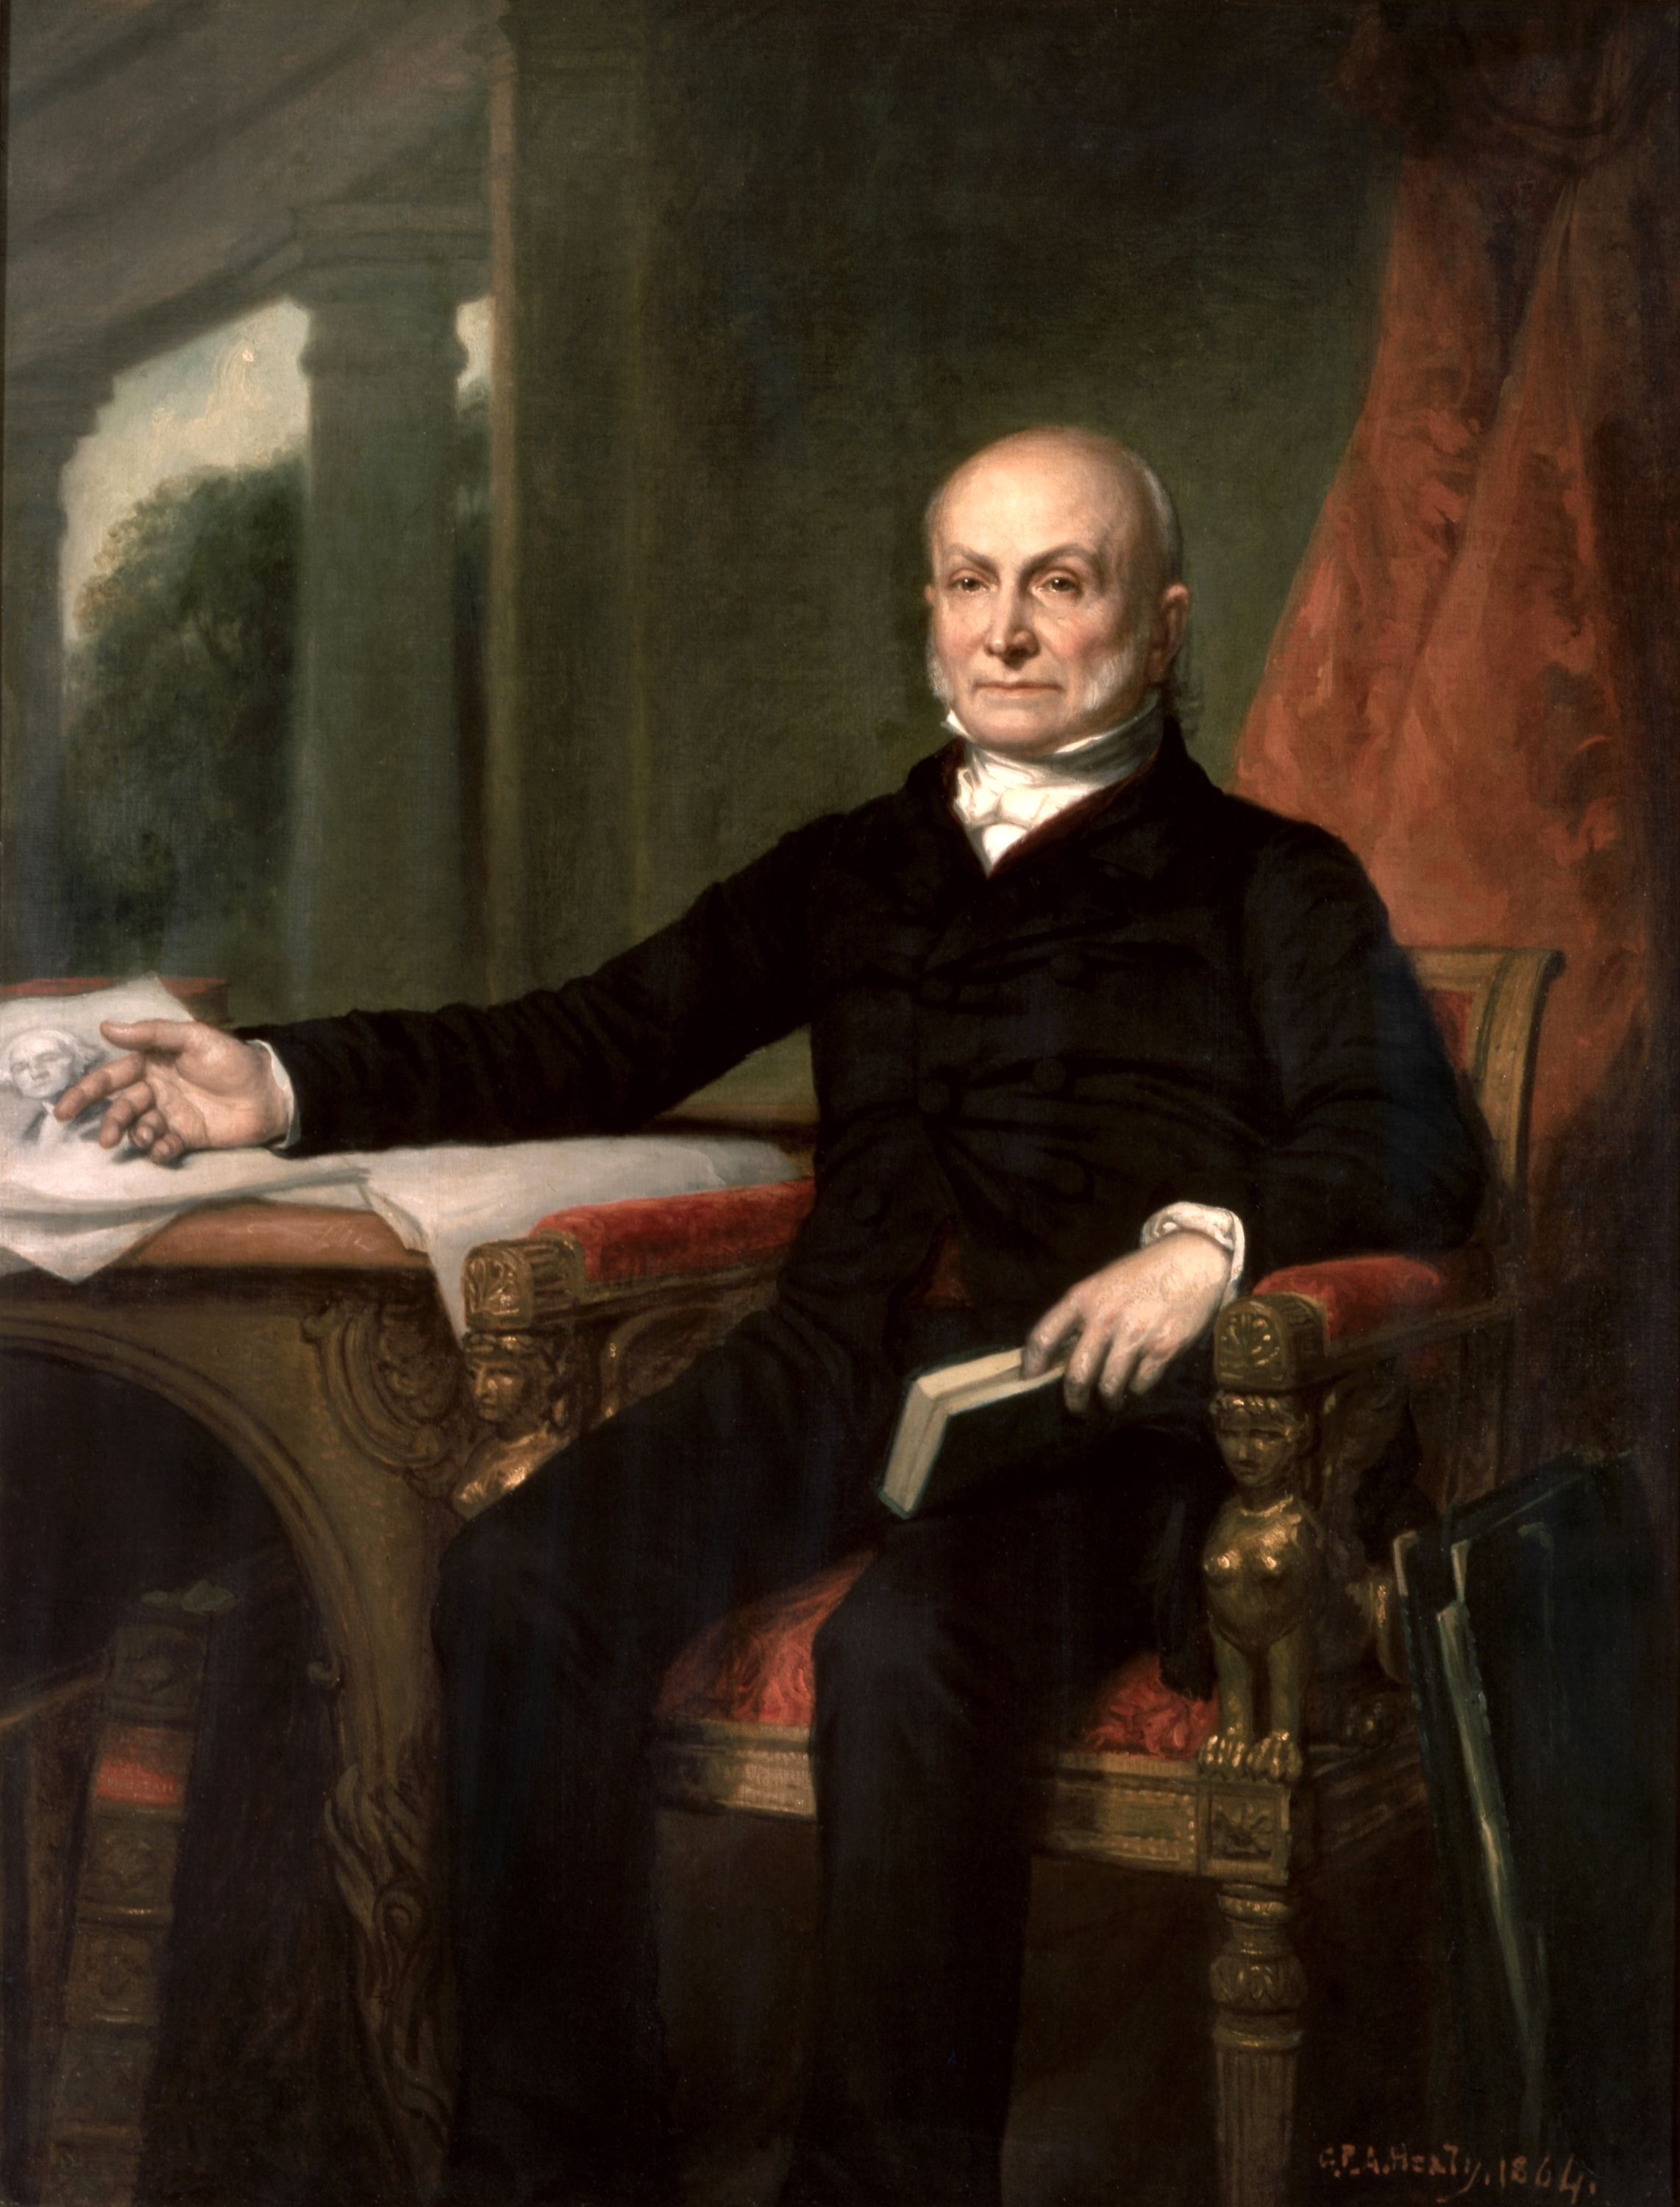 John quincy adams by gpa healy 1858